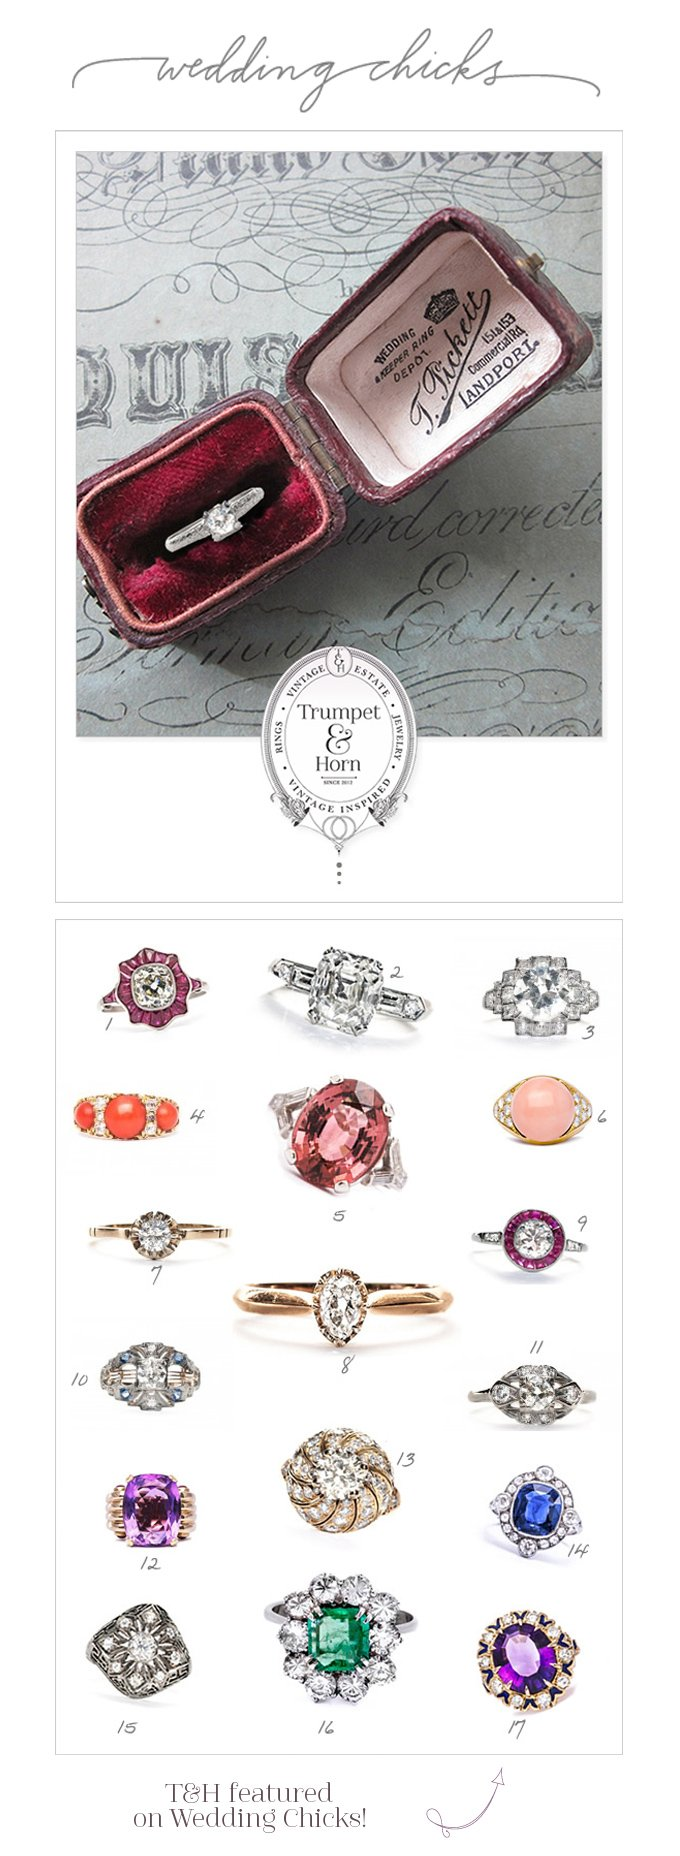 T&H Vintage Engagement Rings featured on Wedding Chicks!